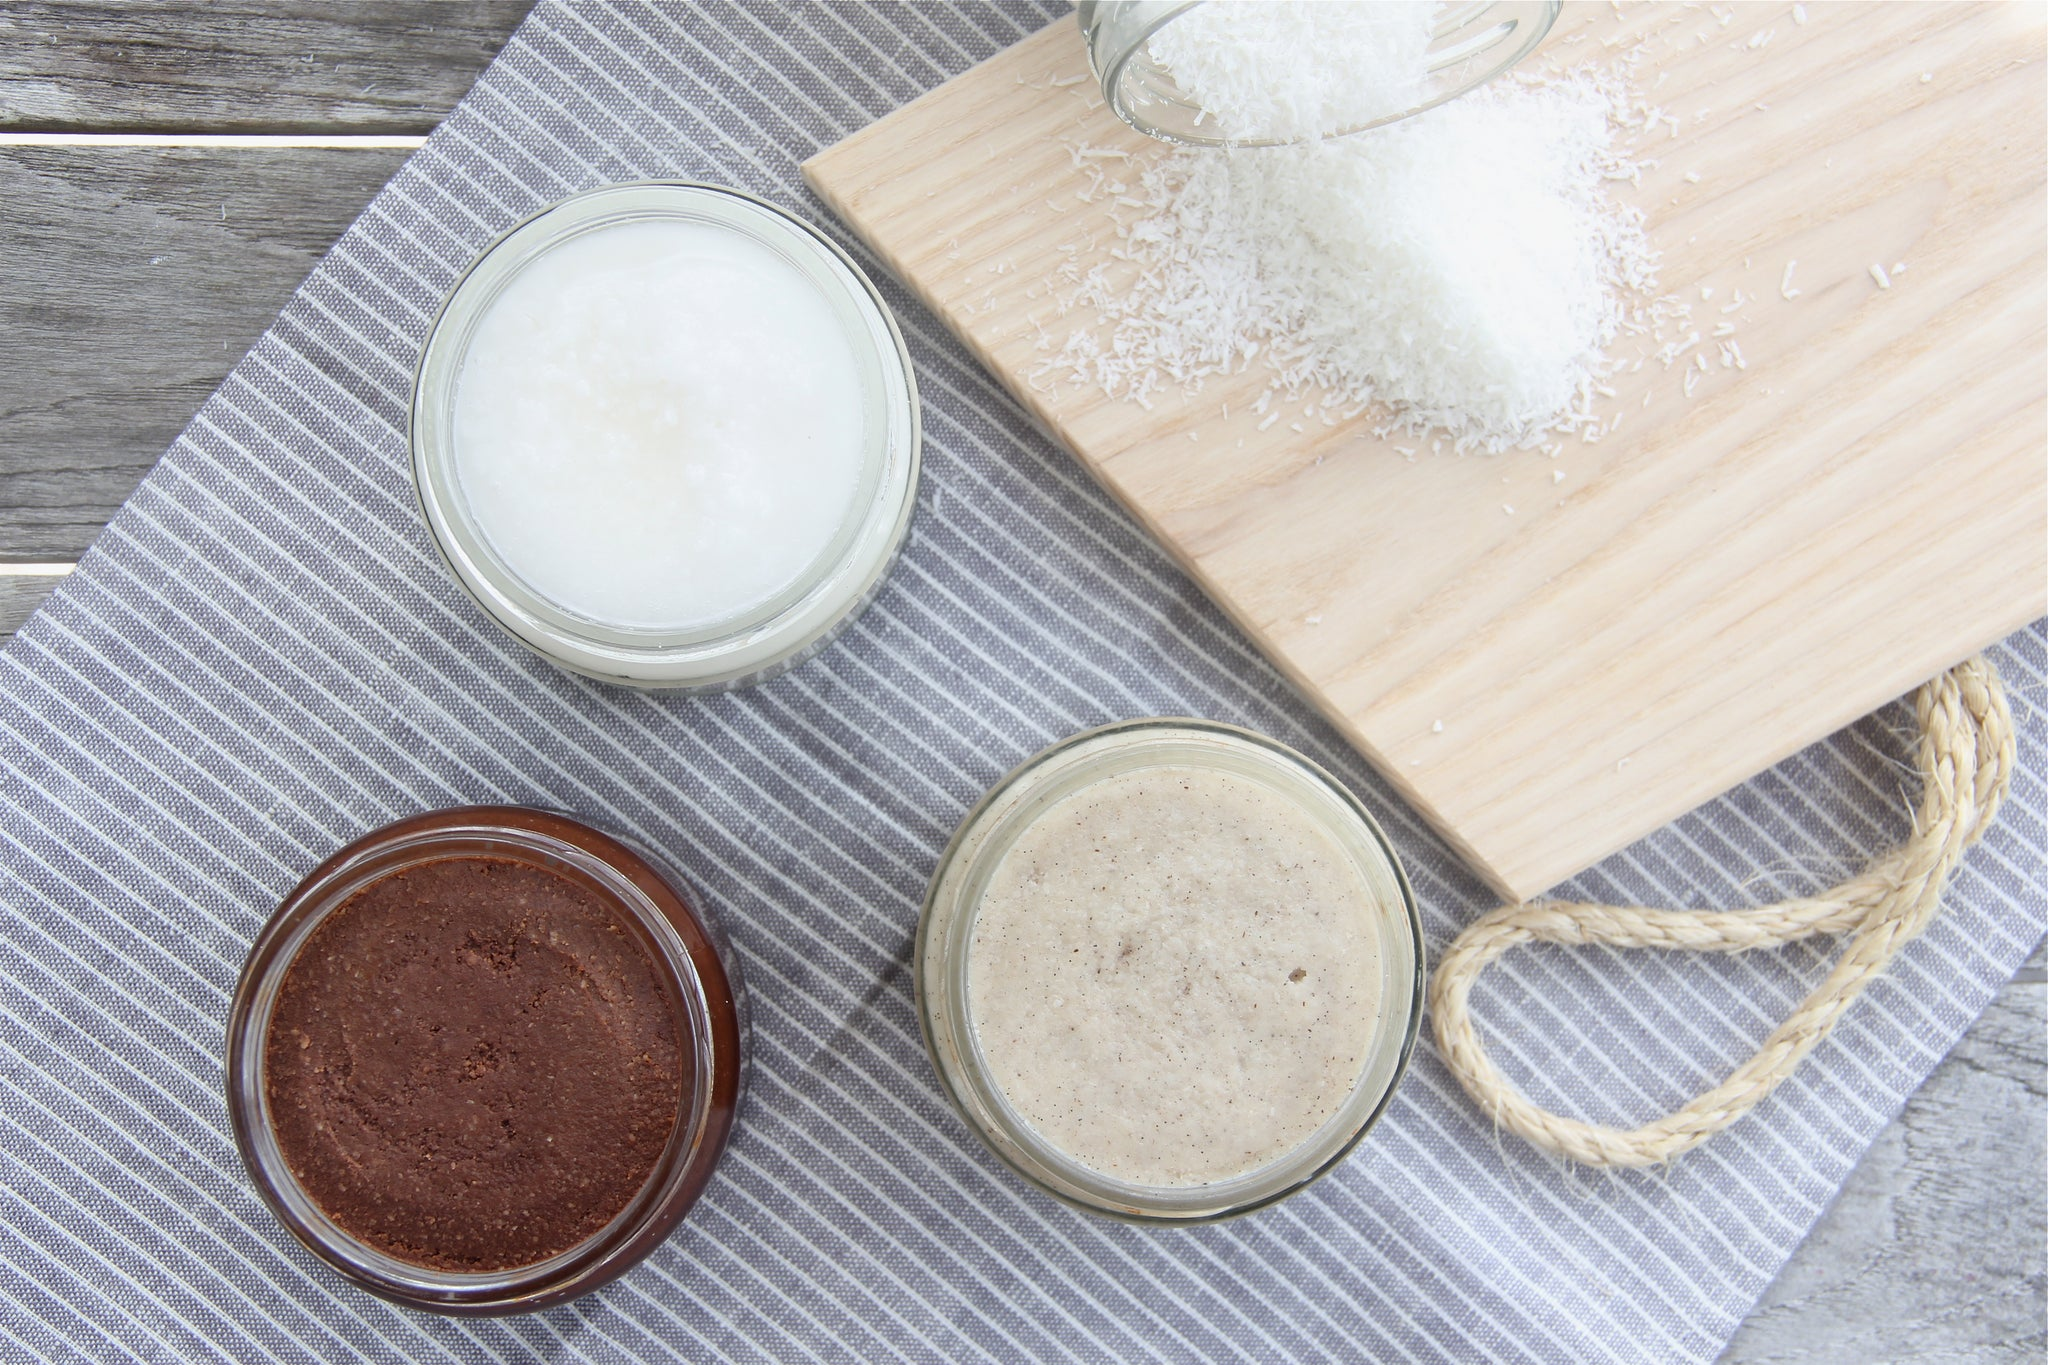 10-minute simple coconut butter #healthy #vegan #coconut #butter #recipe #dairyfree #sugarfree #glutenfree #begoodorganics